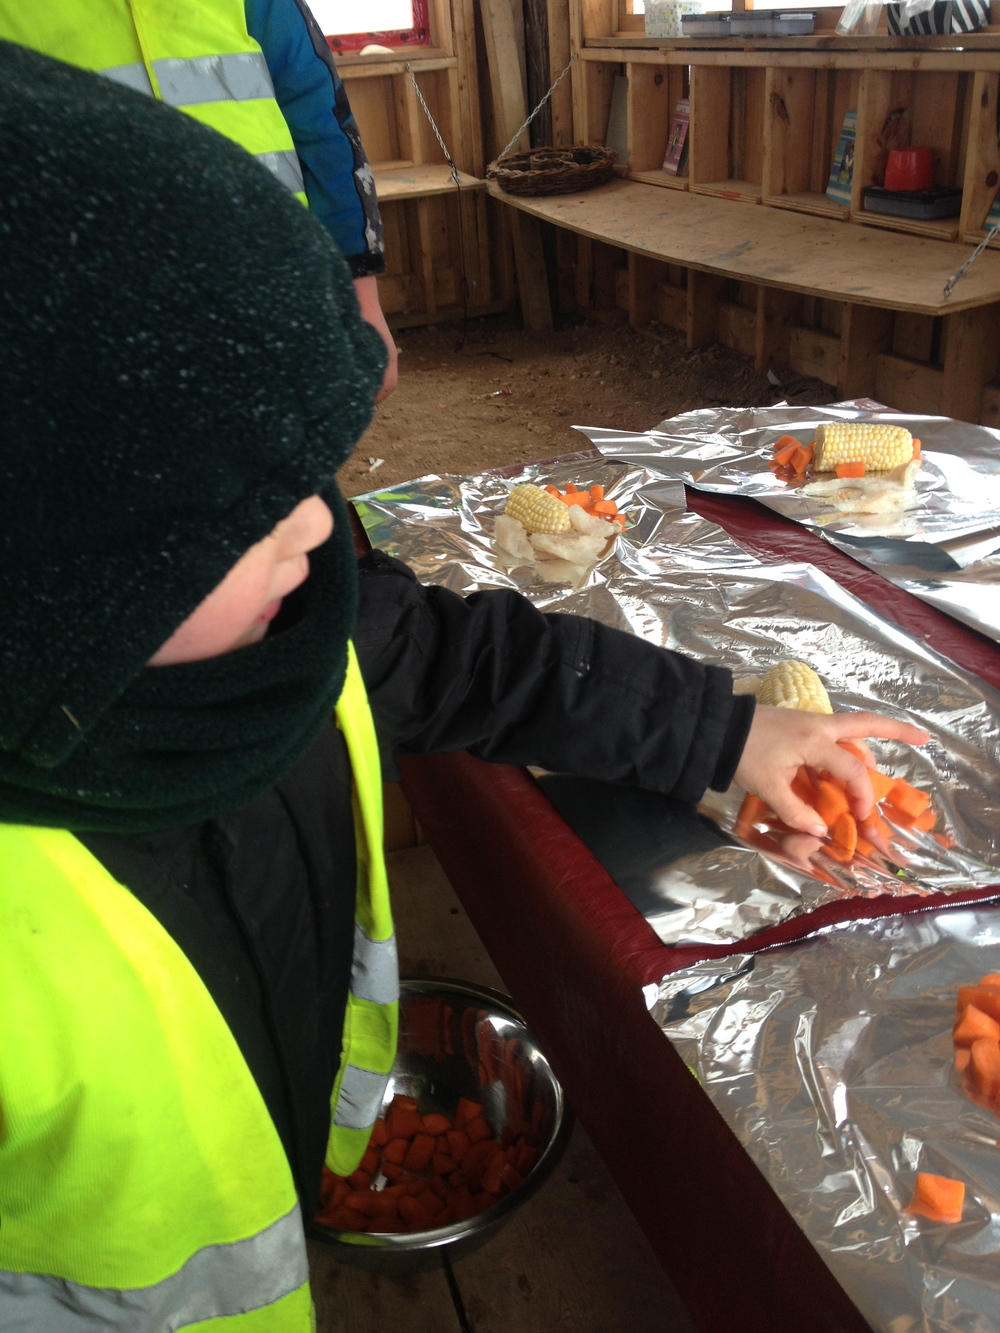 Sawyer did a great job placing the cut up carrots on each serving for the fire. Sawyer indirectly practiced his math skills by taking extra effort to make sure each meal had roughly the same amount of carrots.